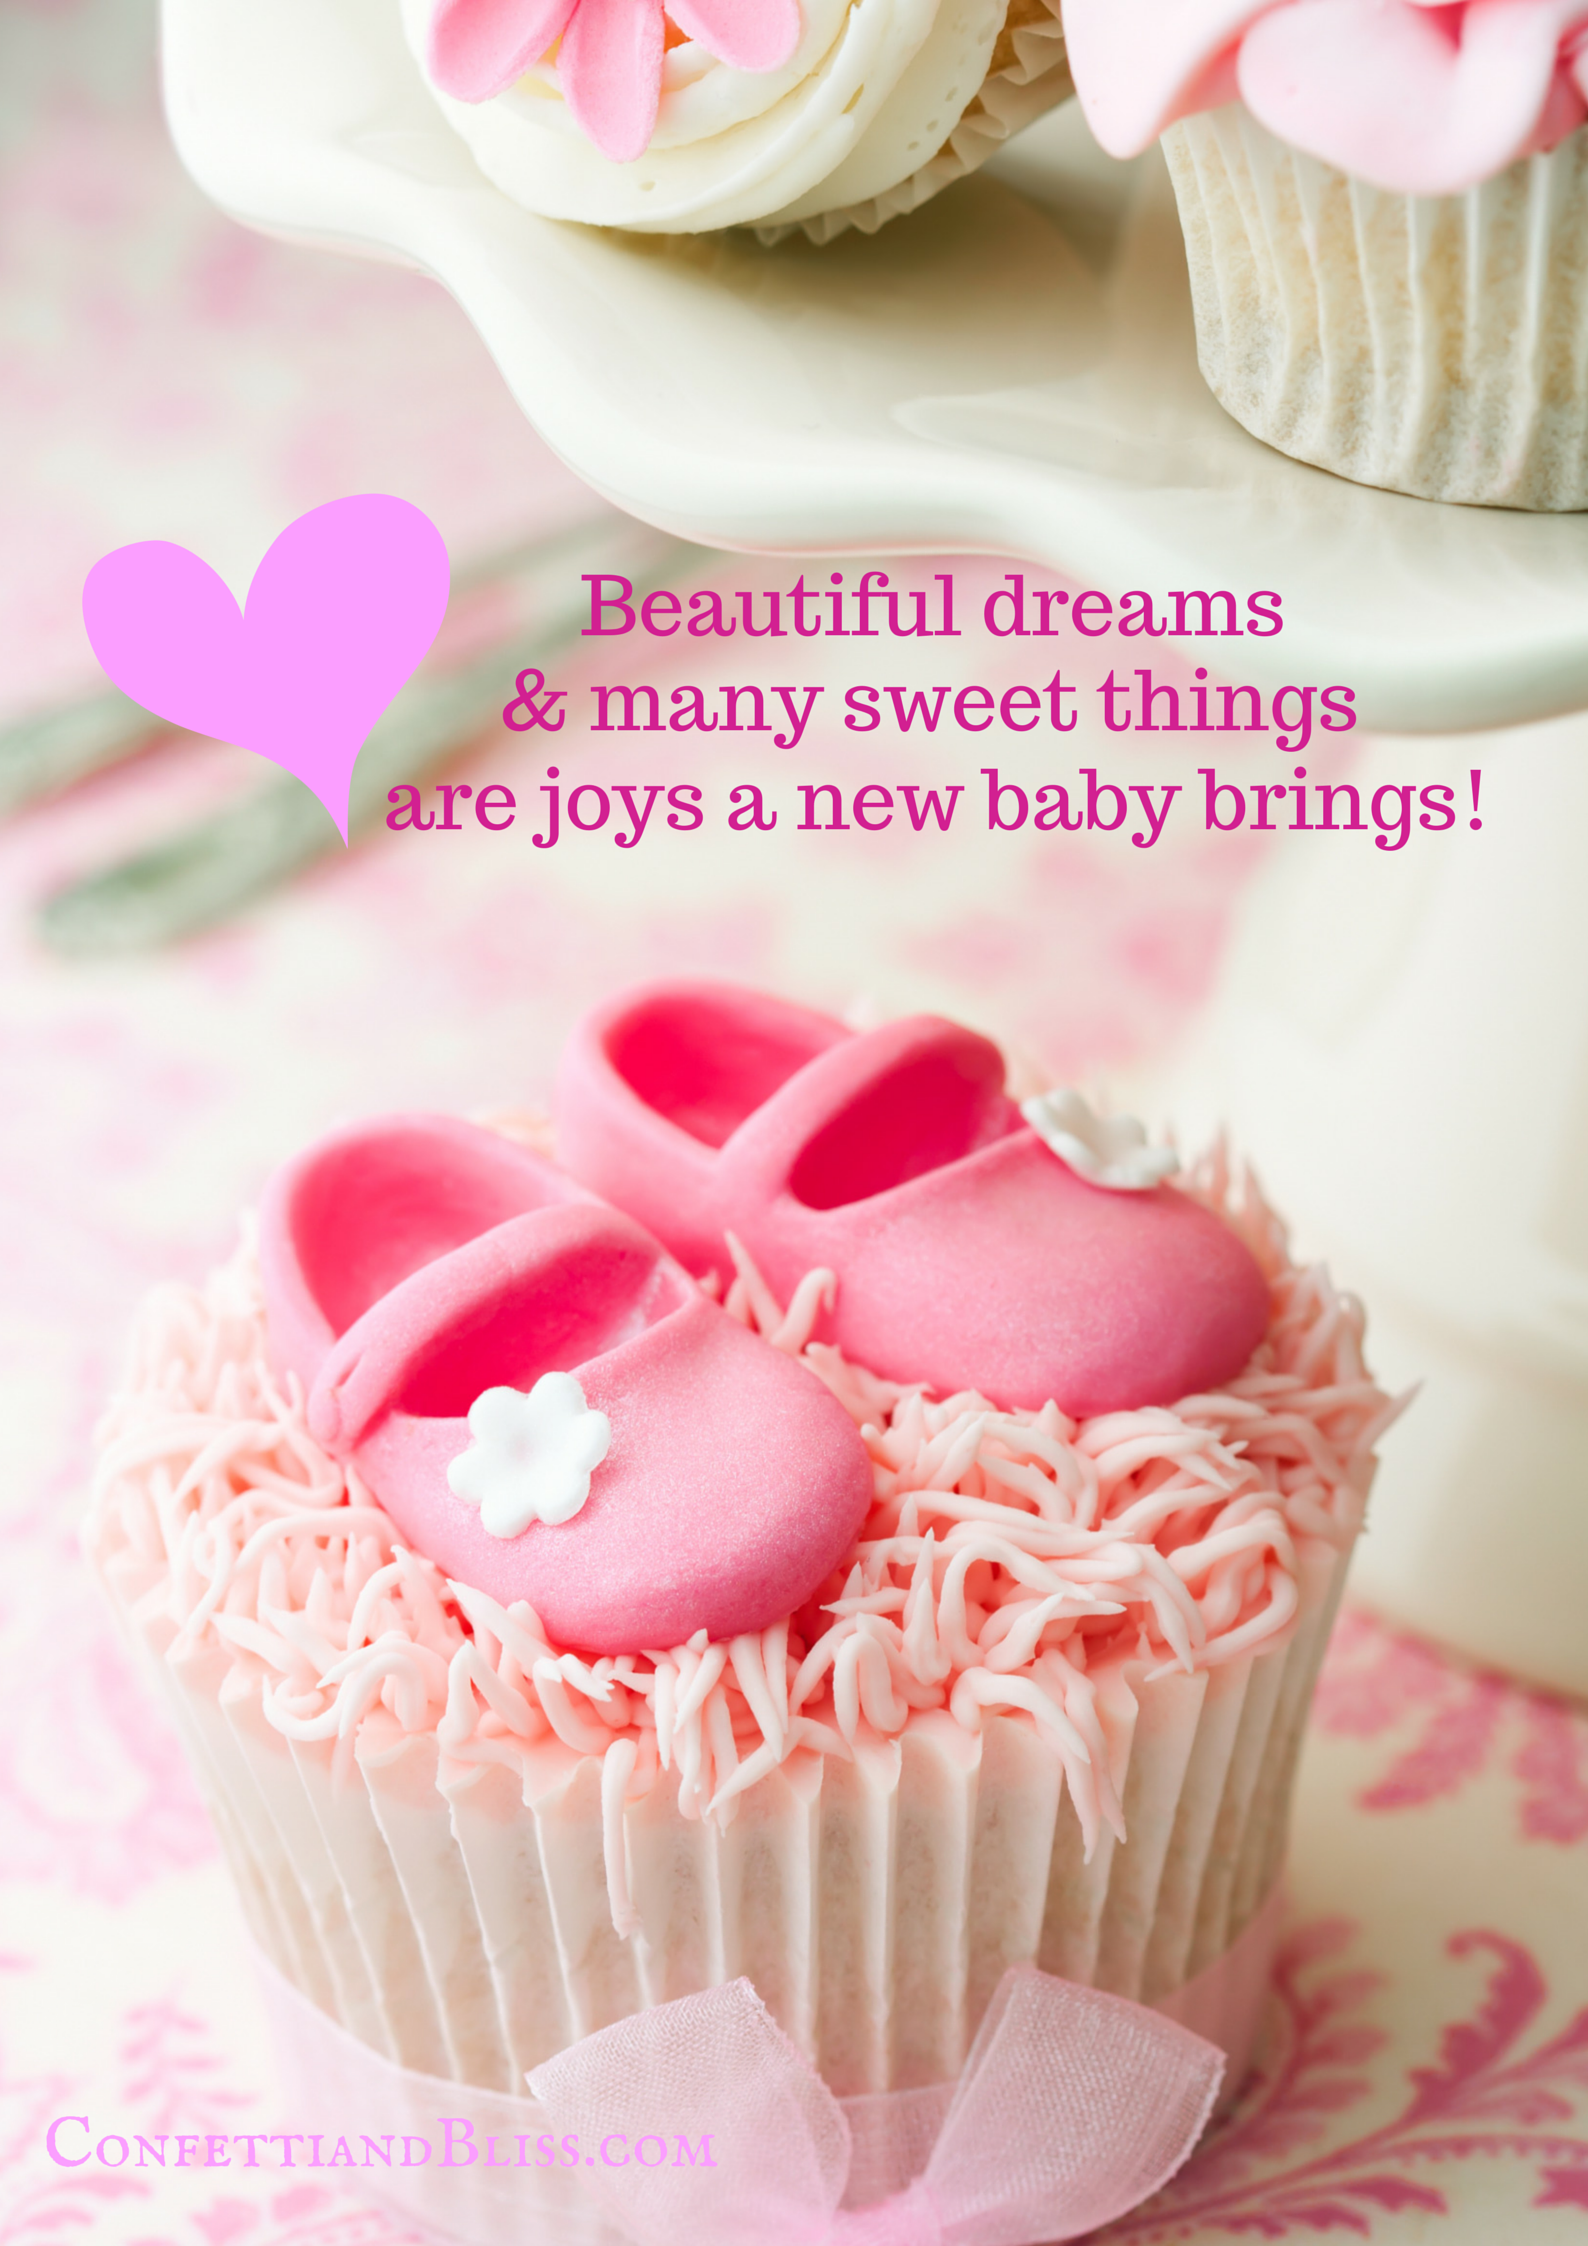 Baby Shower Greeting Card Wording Confetti & Bliss